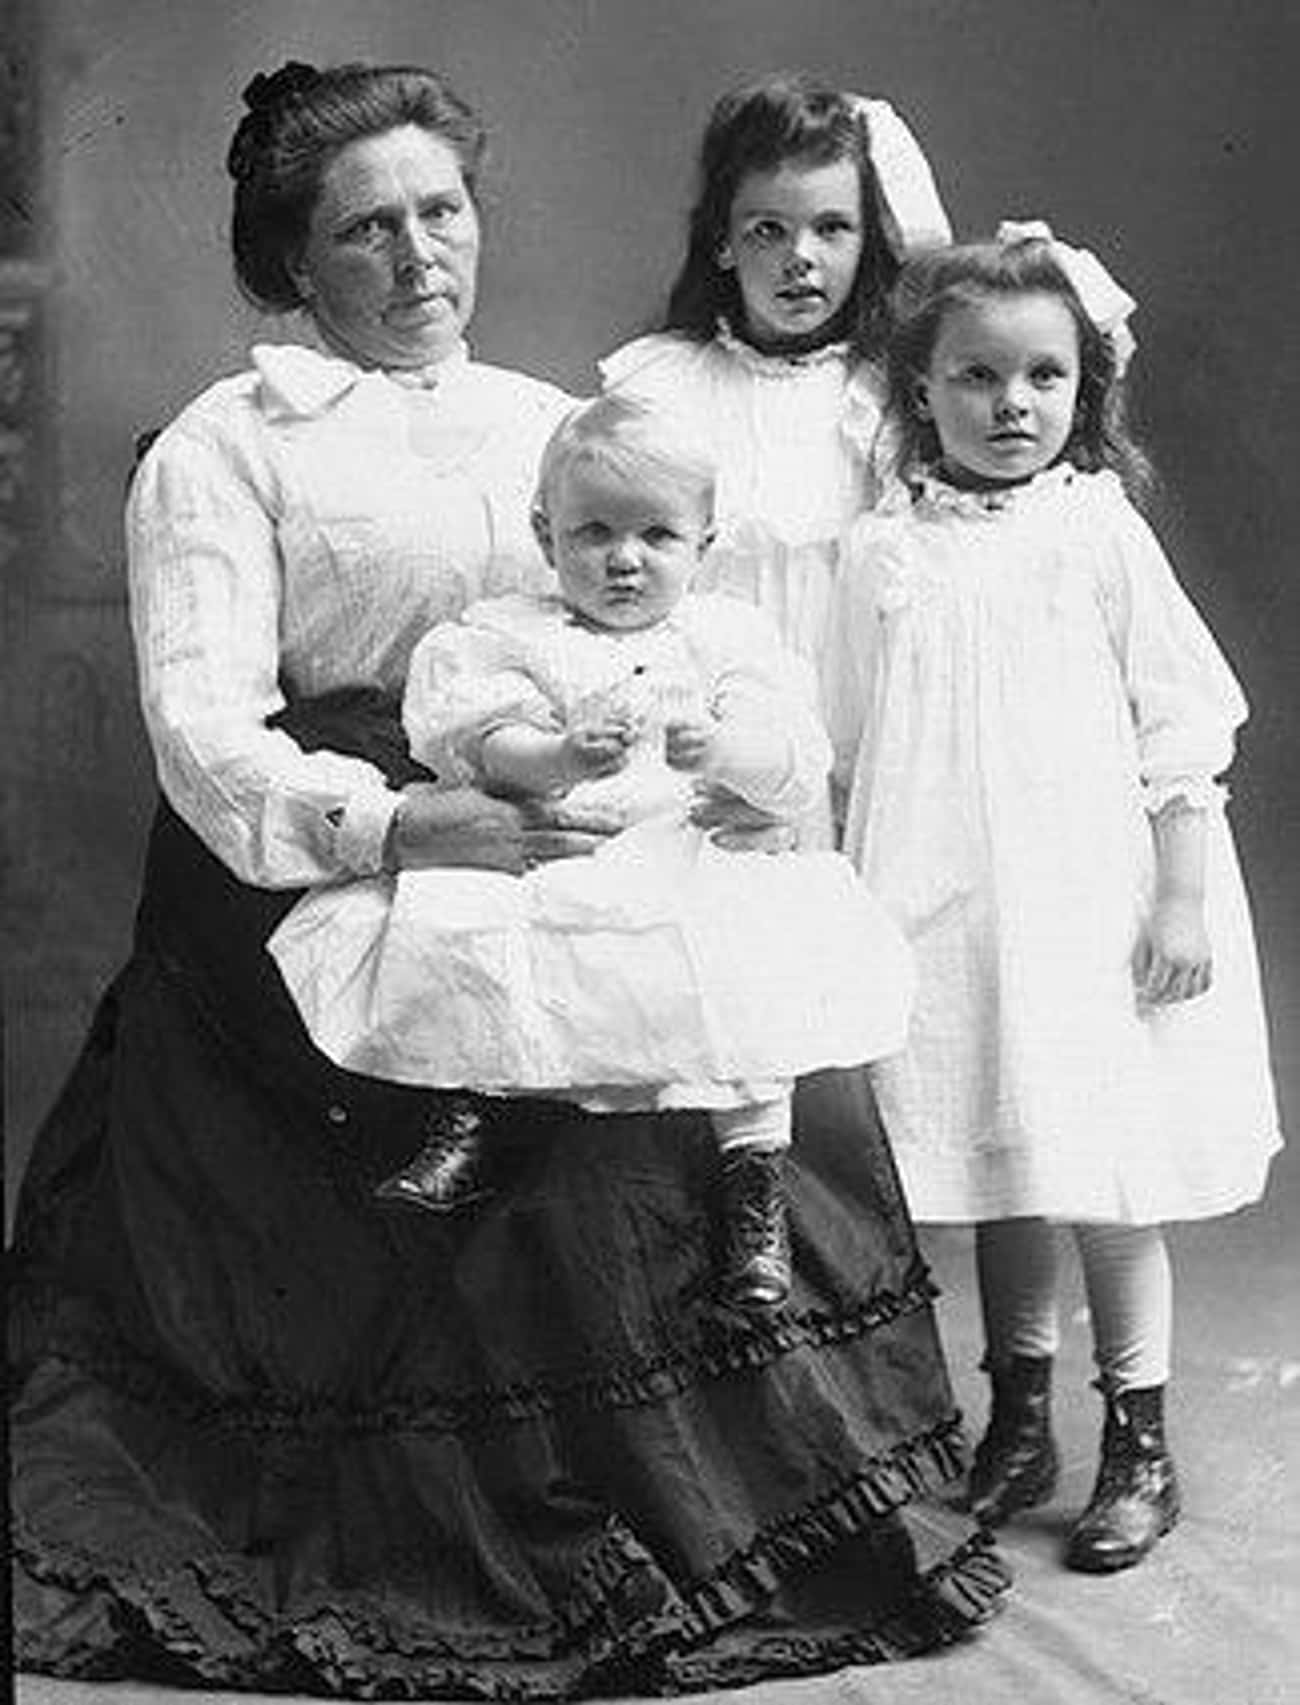 She May Have Killed Three Of H is listed (or ranked) 1 on the list 12 Terrifying Facts About Belle Gunness, One Of The Most Disturbing Killers Ever